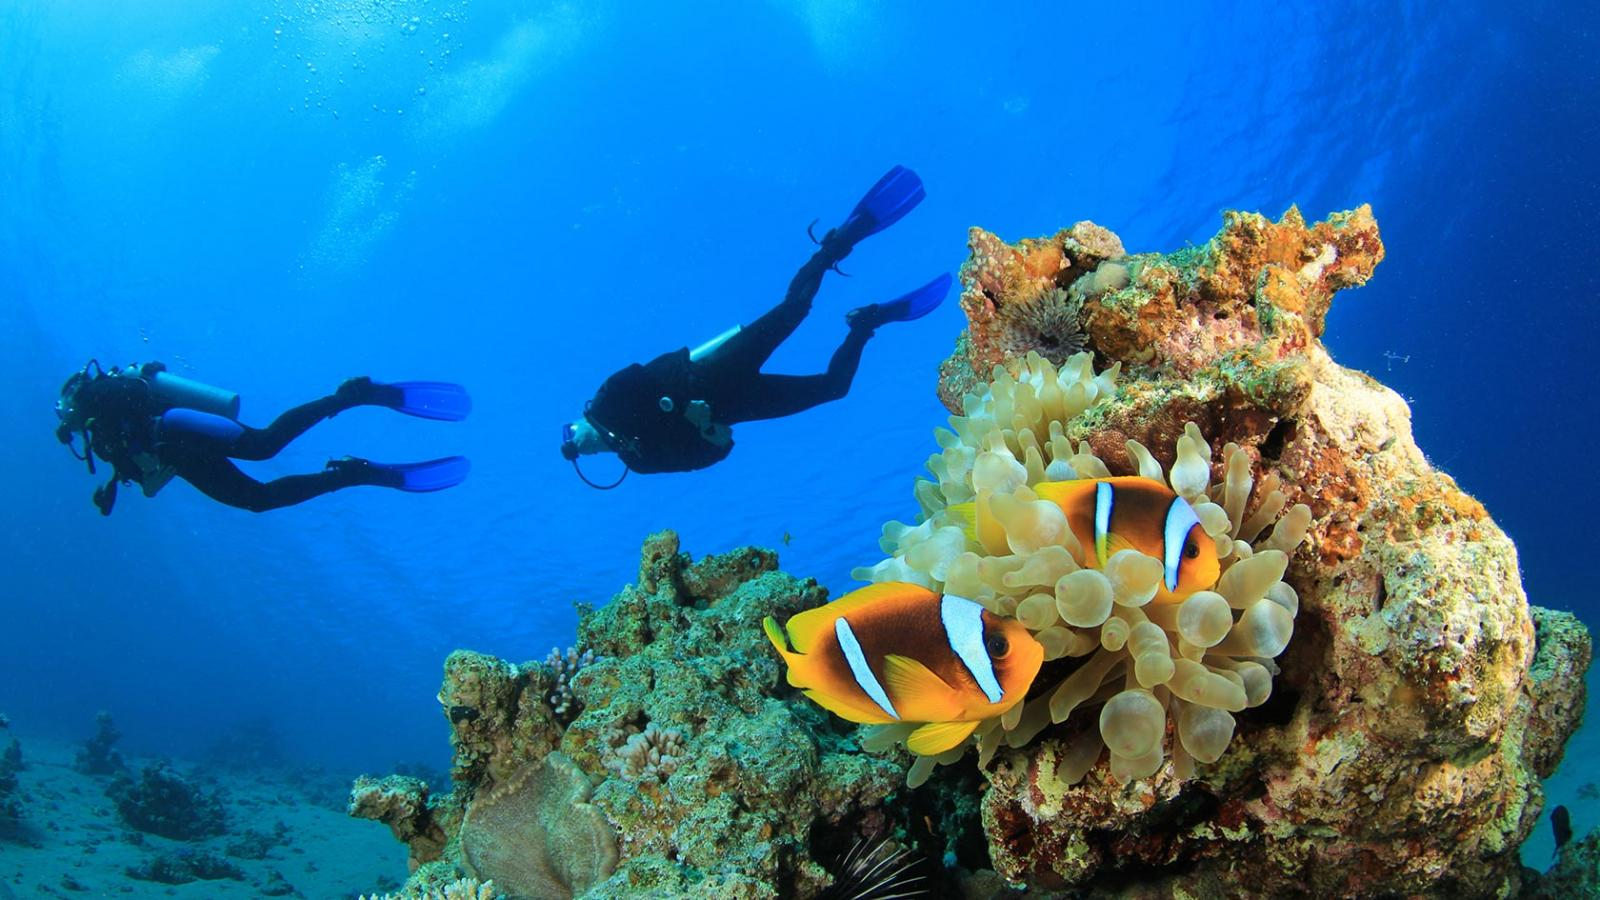 Scuba Diving In The Turquoise Waters Of Alanya